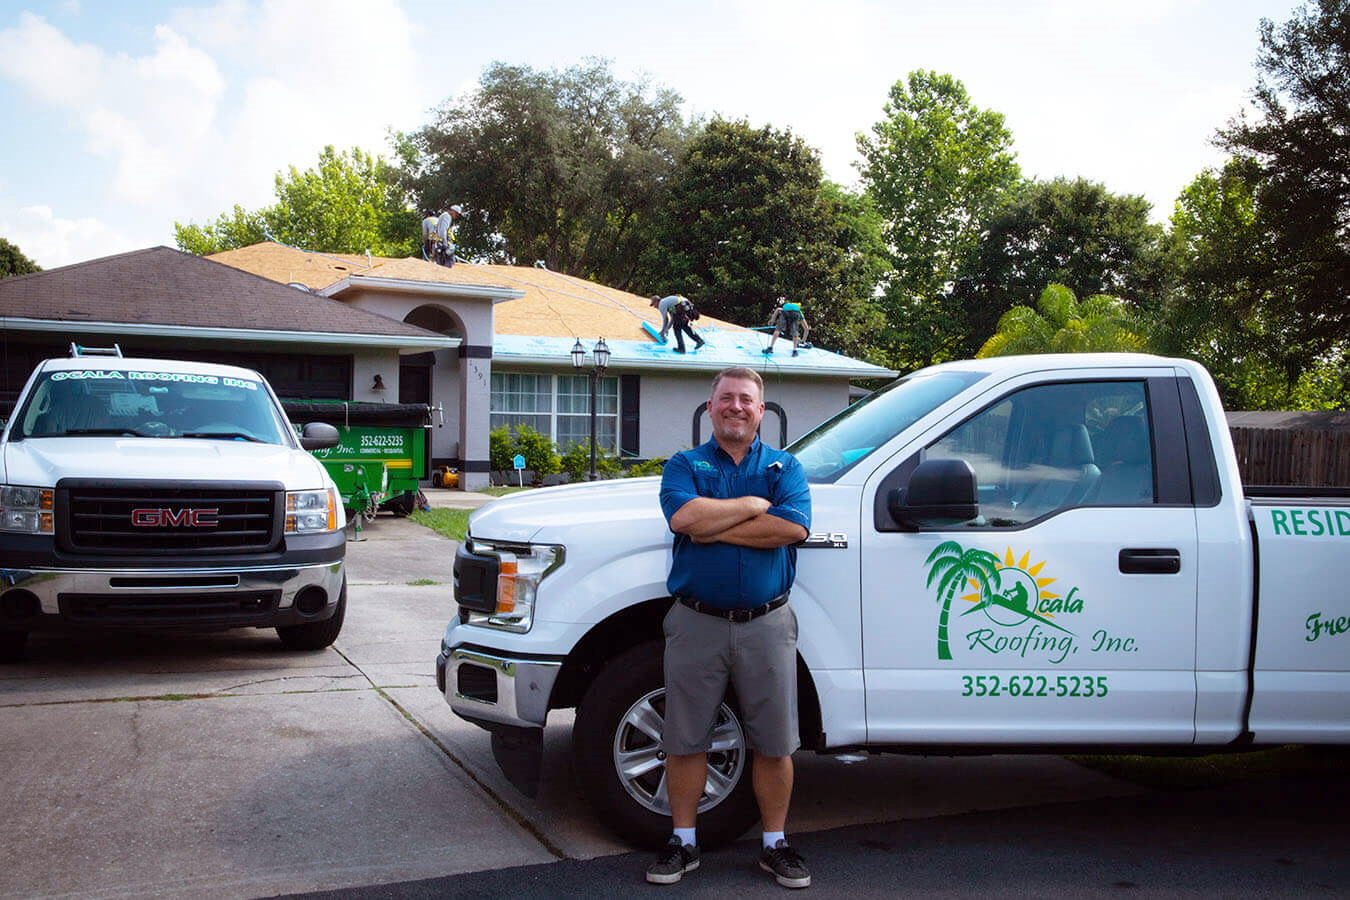 Ocala Roofing Inc - Residential and Commerical Roofing Services in Ocala Florida